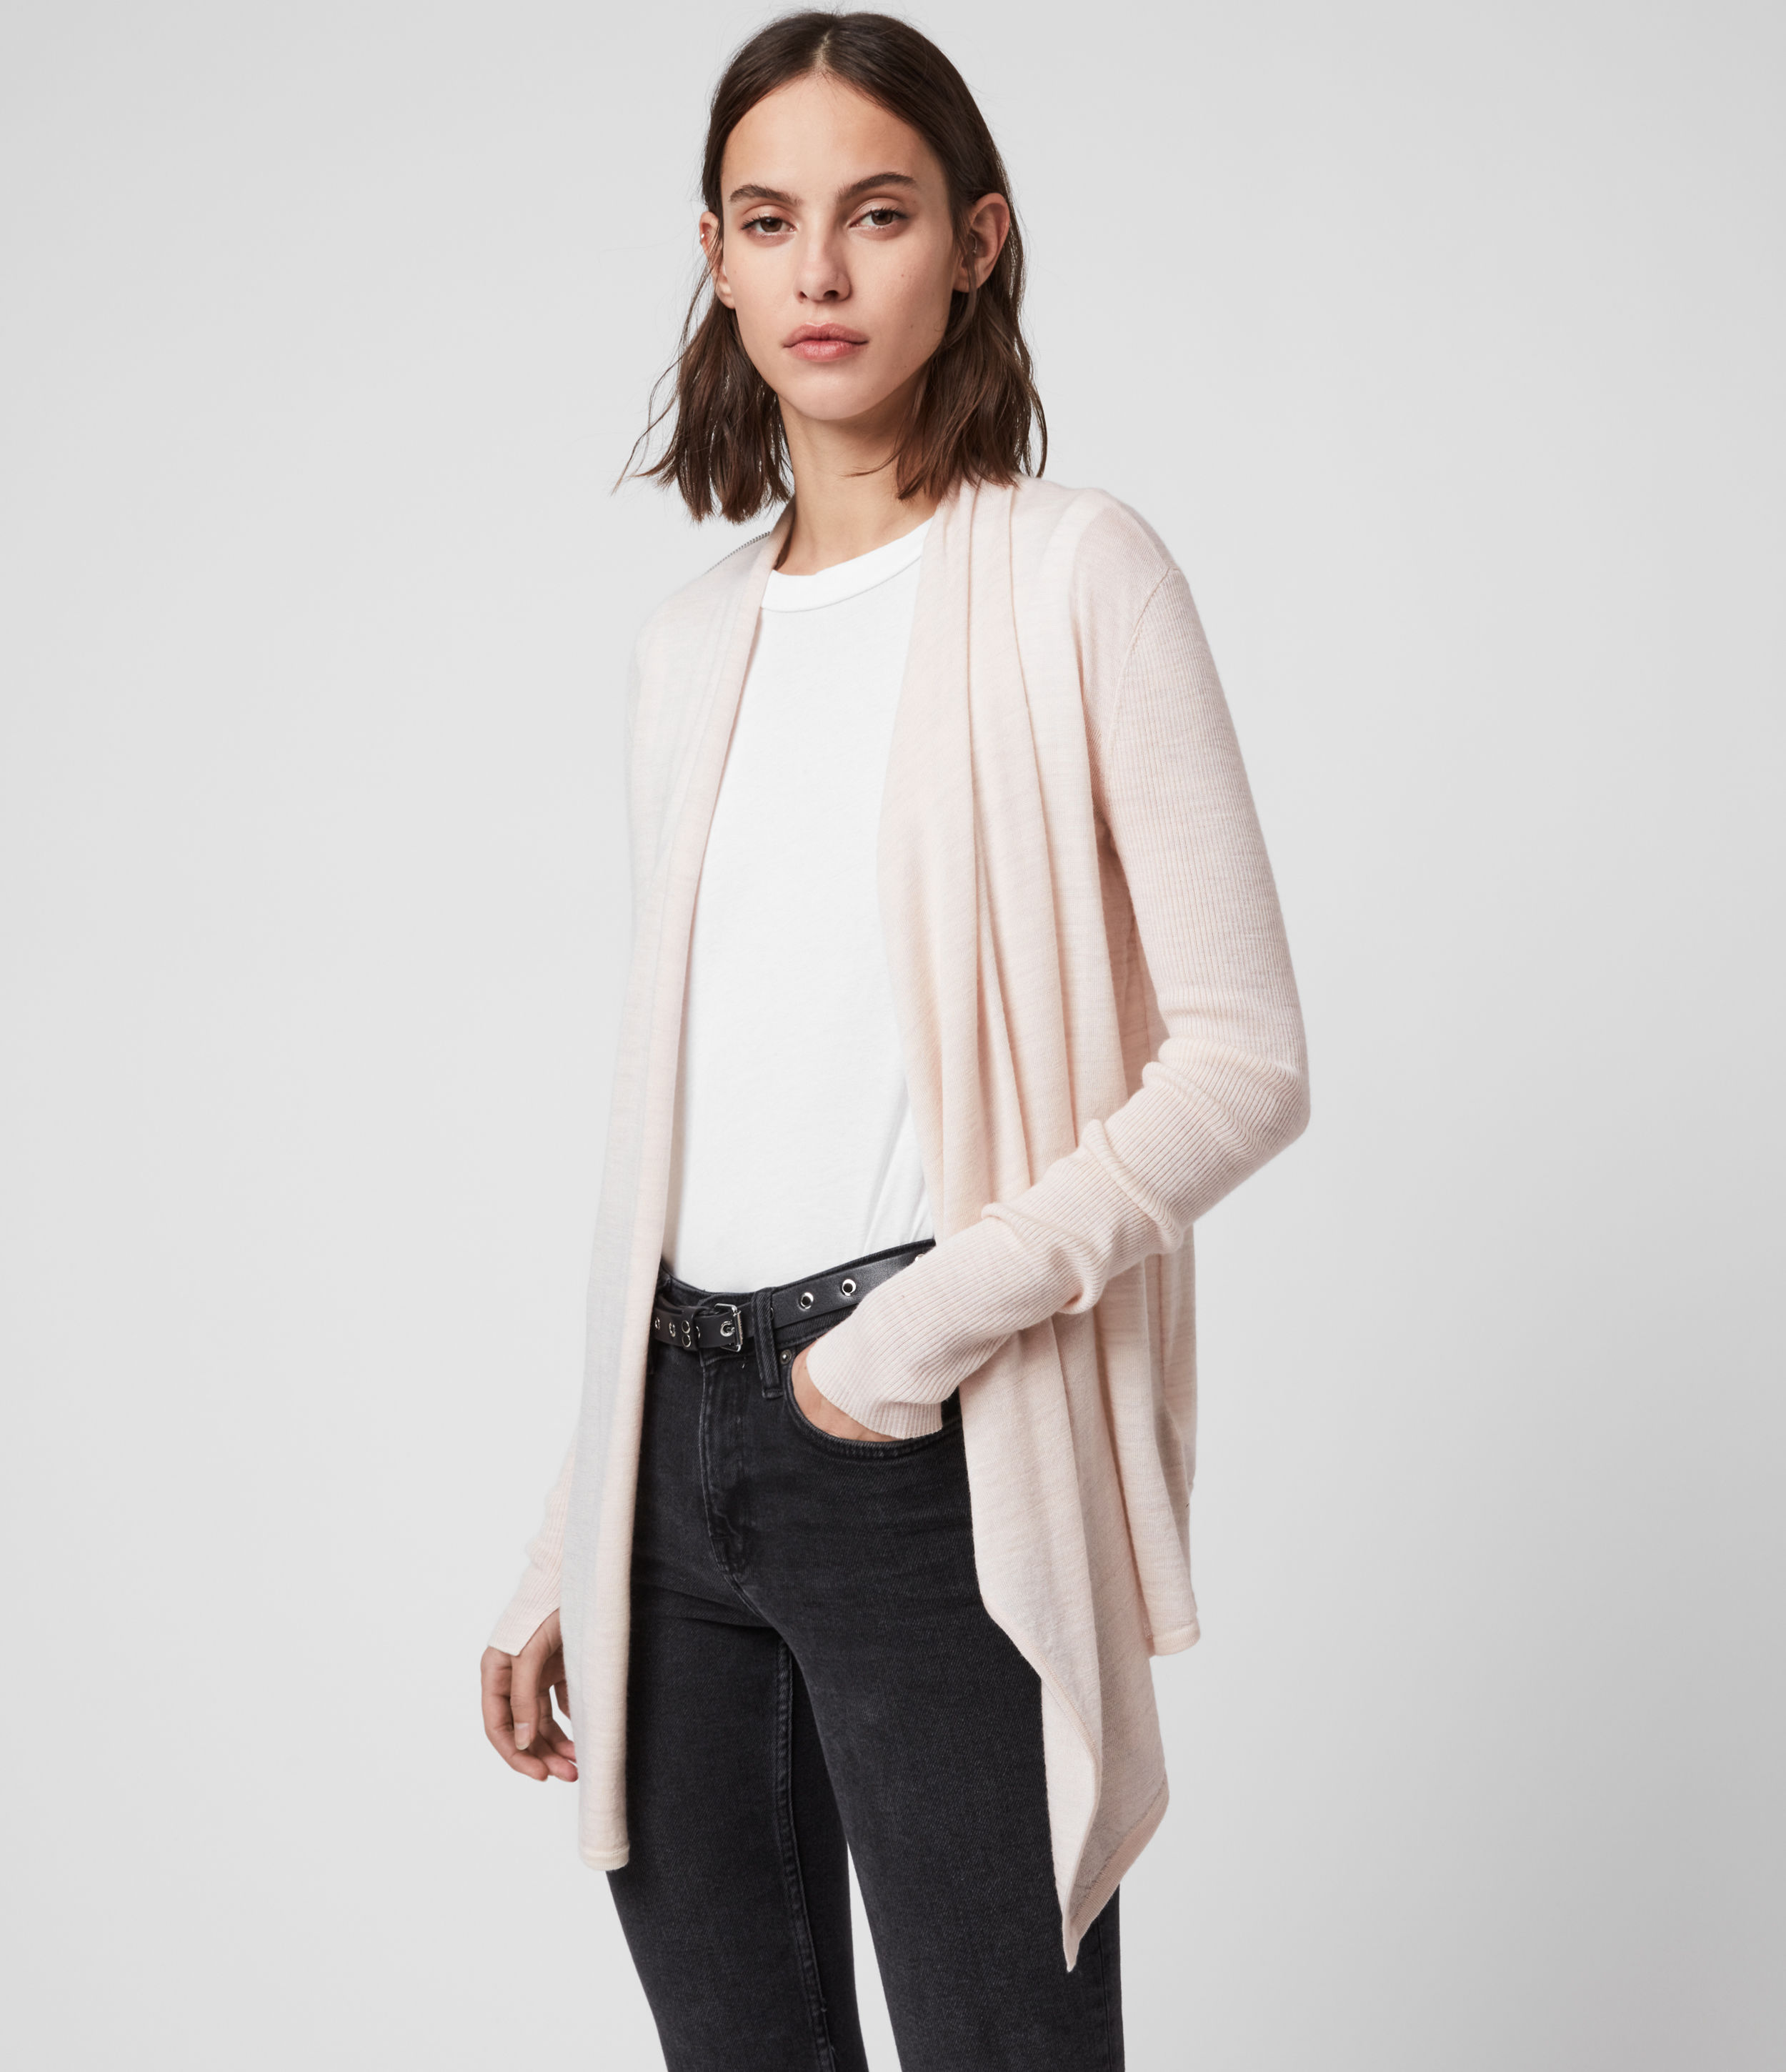 AllSaints Women's Wool Drina Ribbed Cardigan, Pink, Size: XS